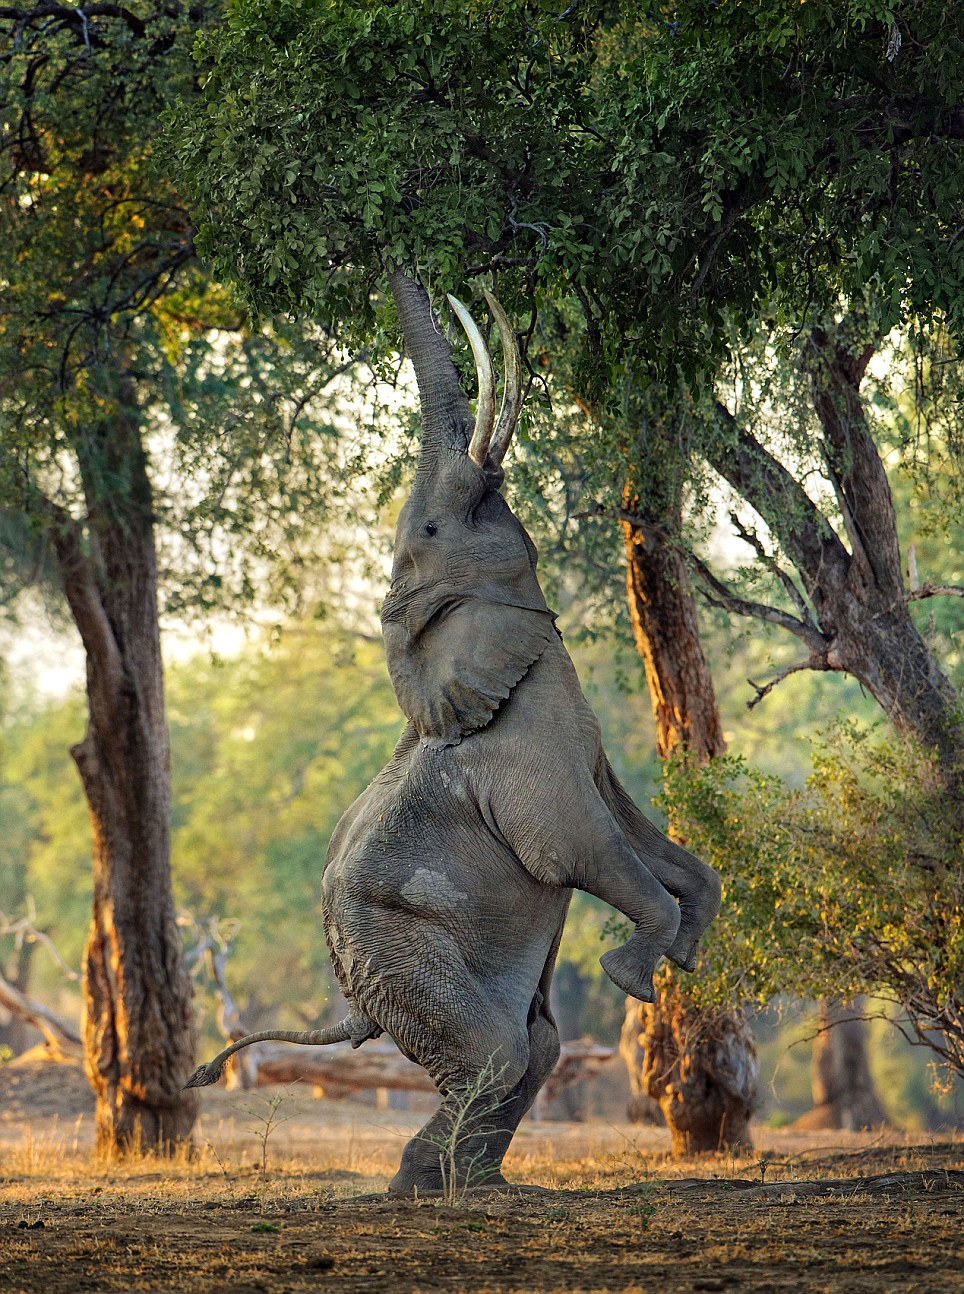 Posh Leave Me Elephant Was Oblivious To People Watching Him Reachfor Food Elephant Stands On Its Back Legs To Eat Leaves Daily Mail Elephant Food Plant Care Elephant Food Plant Arizona houzz-02 Elephant Food Plant